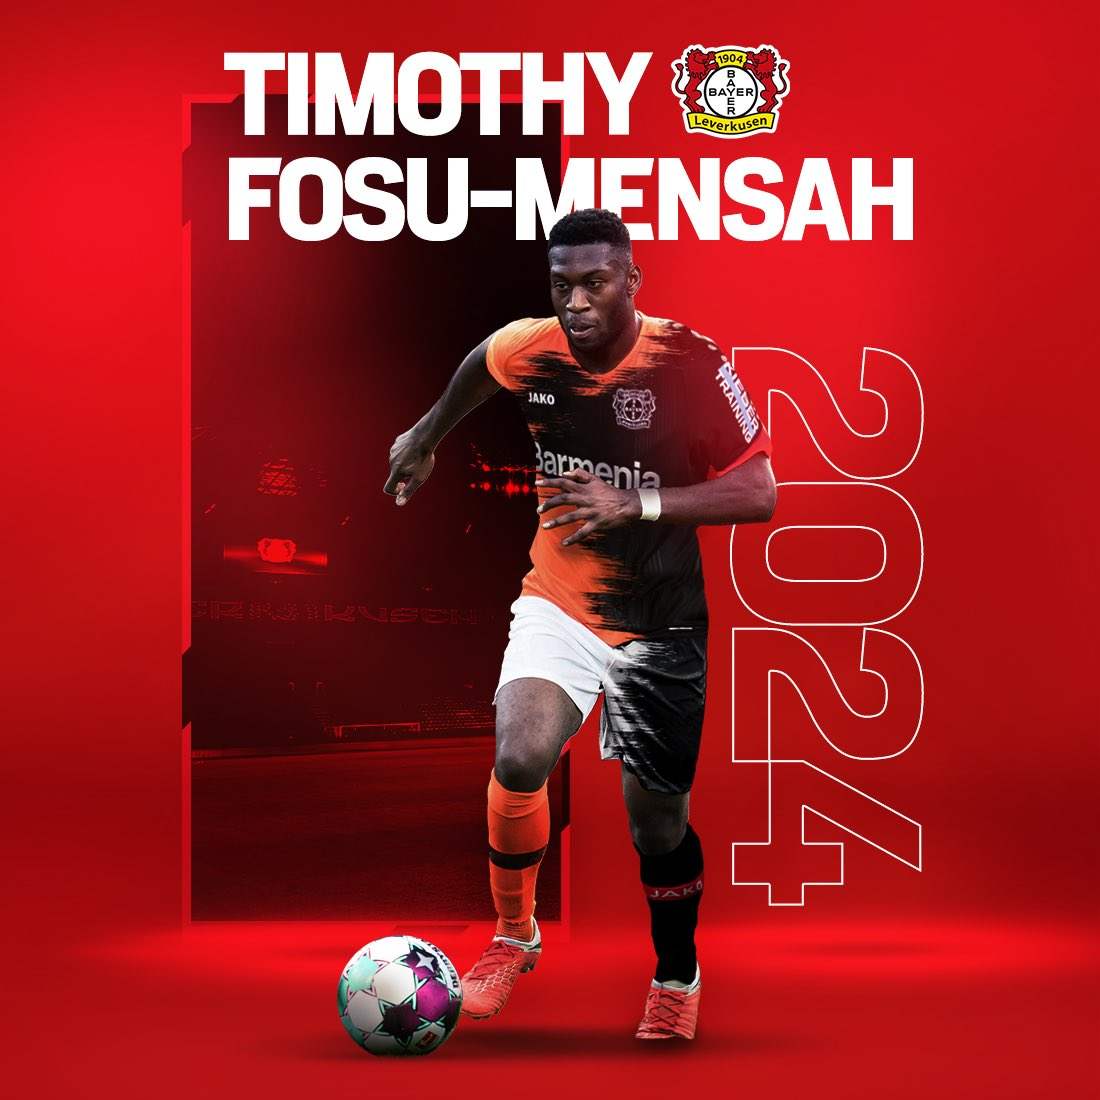 JUST IN: Timothy Fosu-Mensah joins Bayer Leverkusen for an undisclosed fee